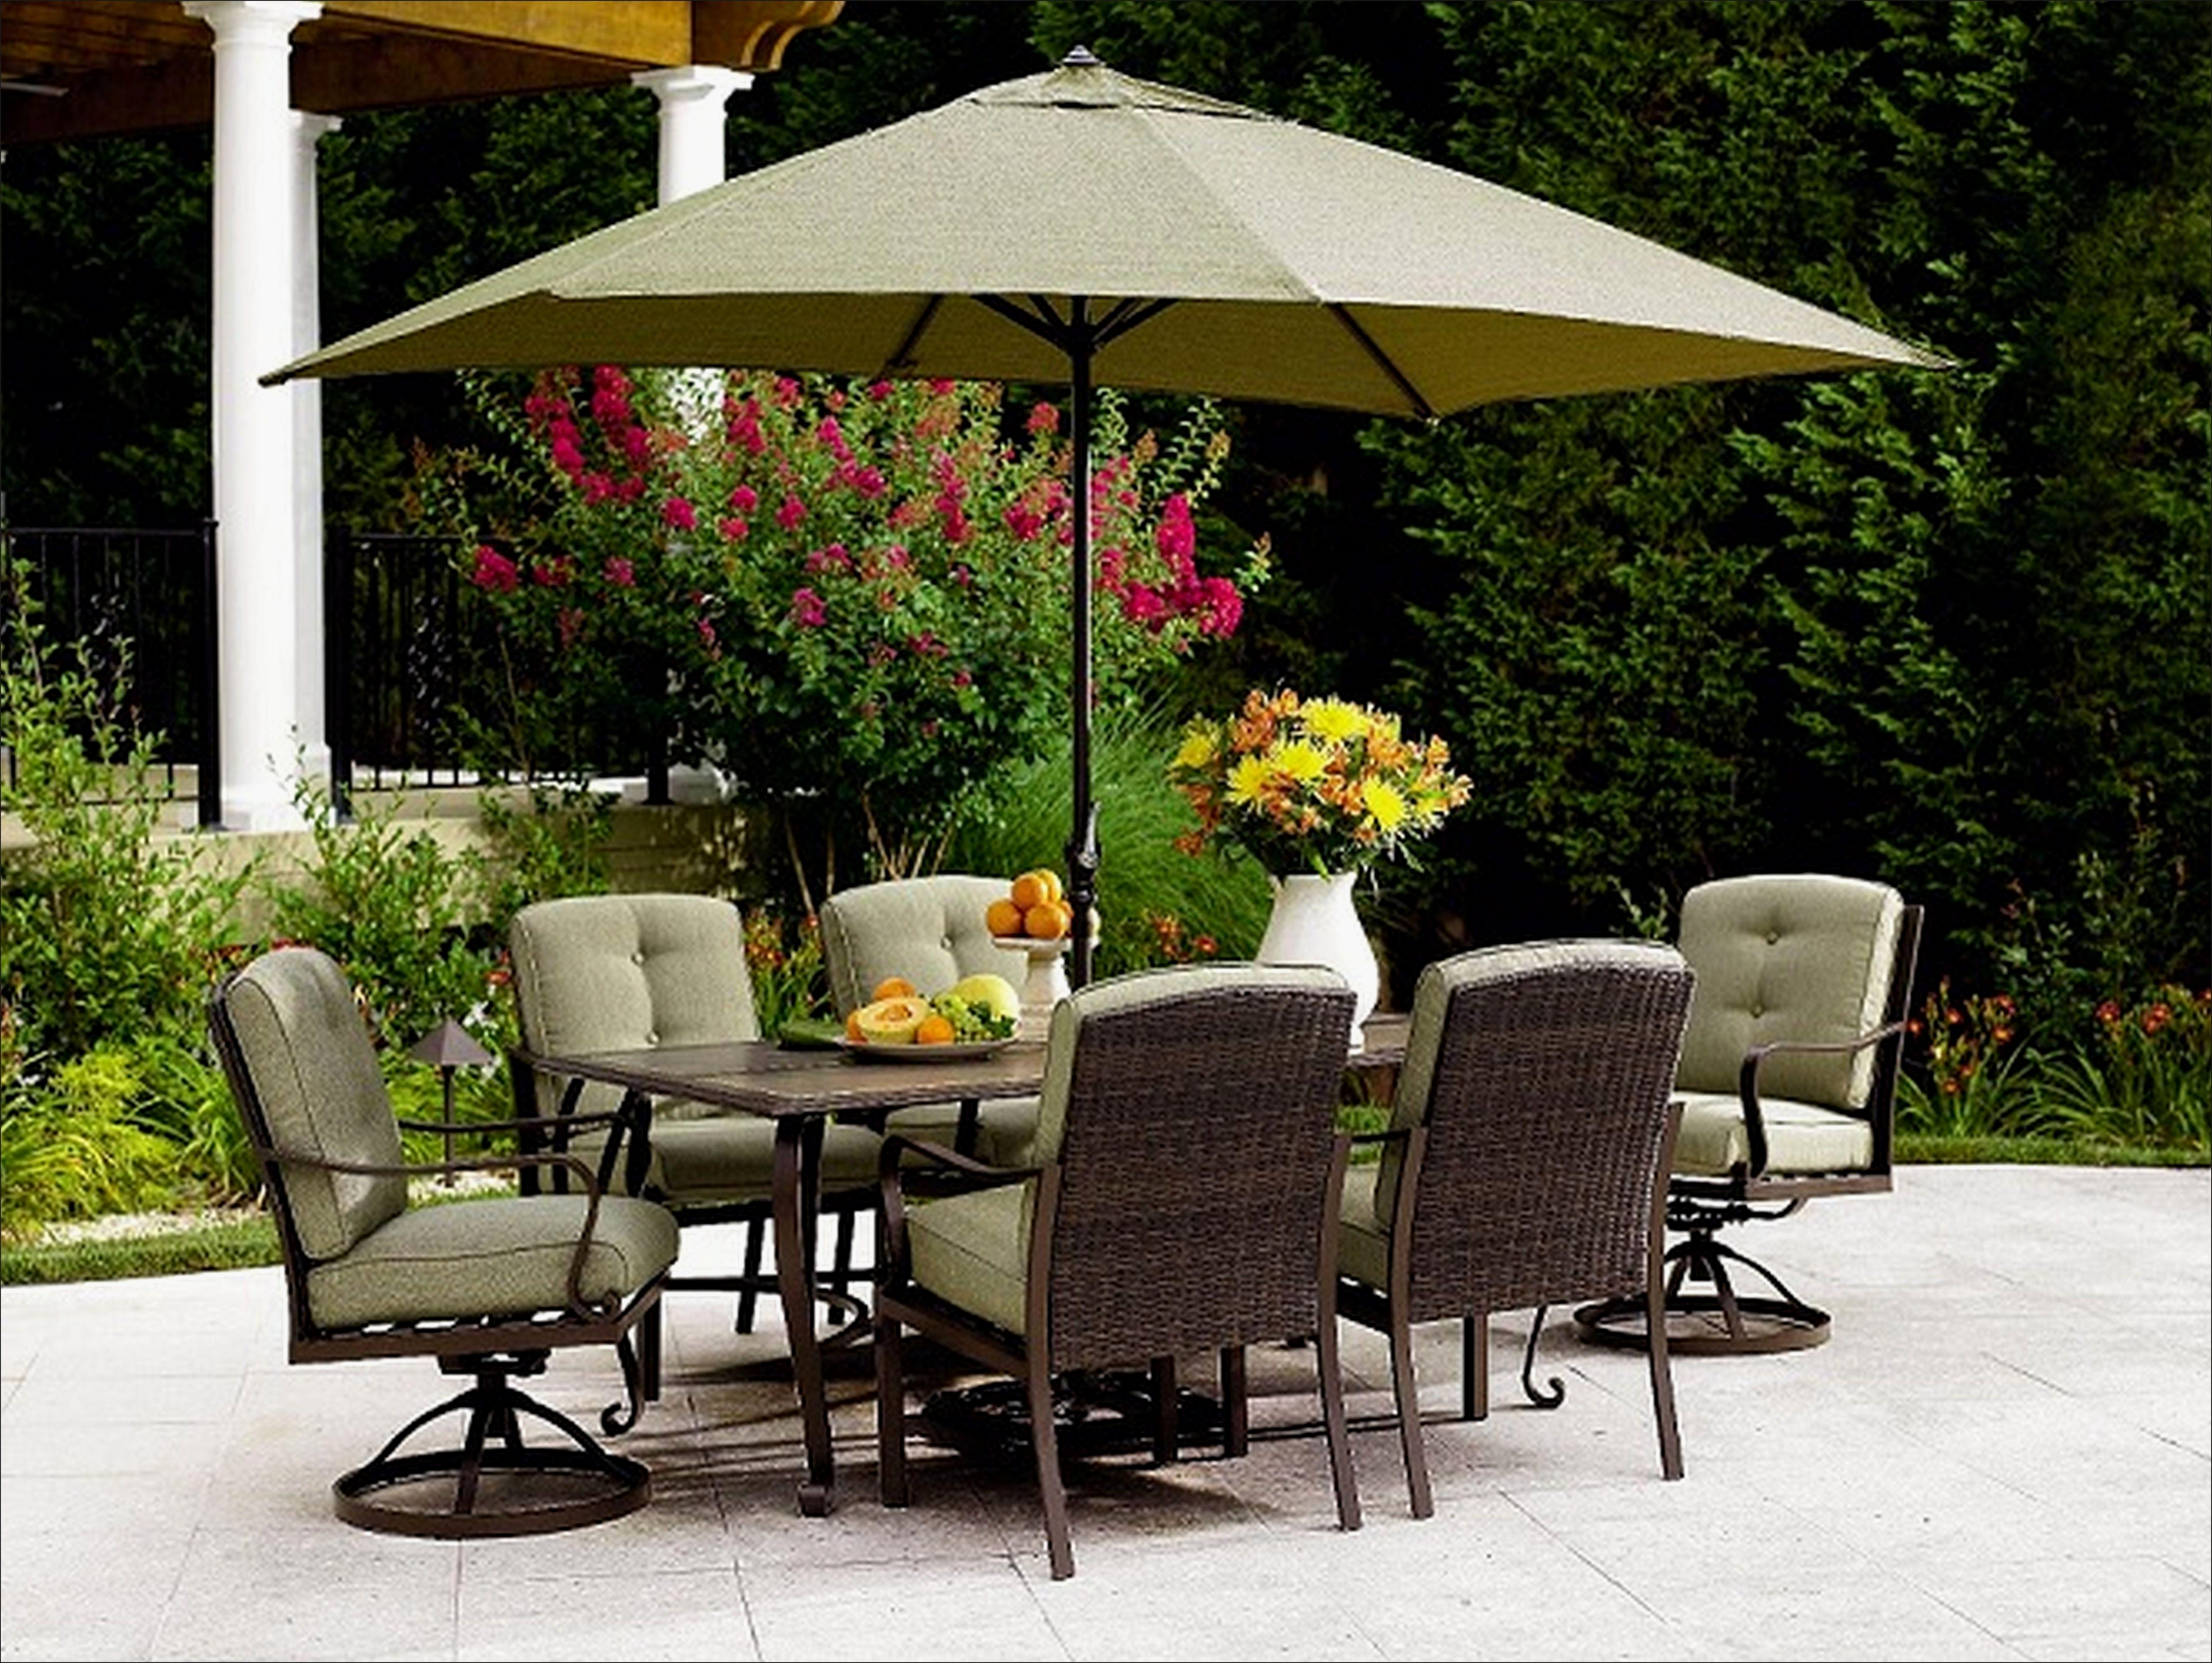 Well Liked Patio Furniture Sets With Umbrellas Throughout 46 Best Of Sears Patio Furniture Sets Images (View 5 of 20)